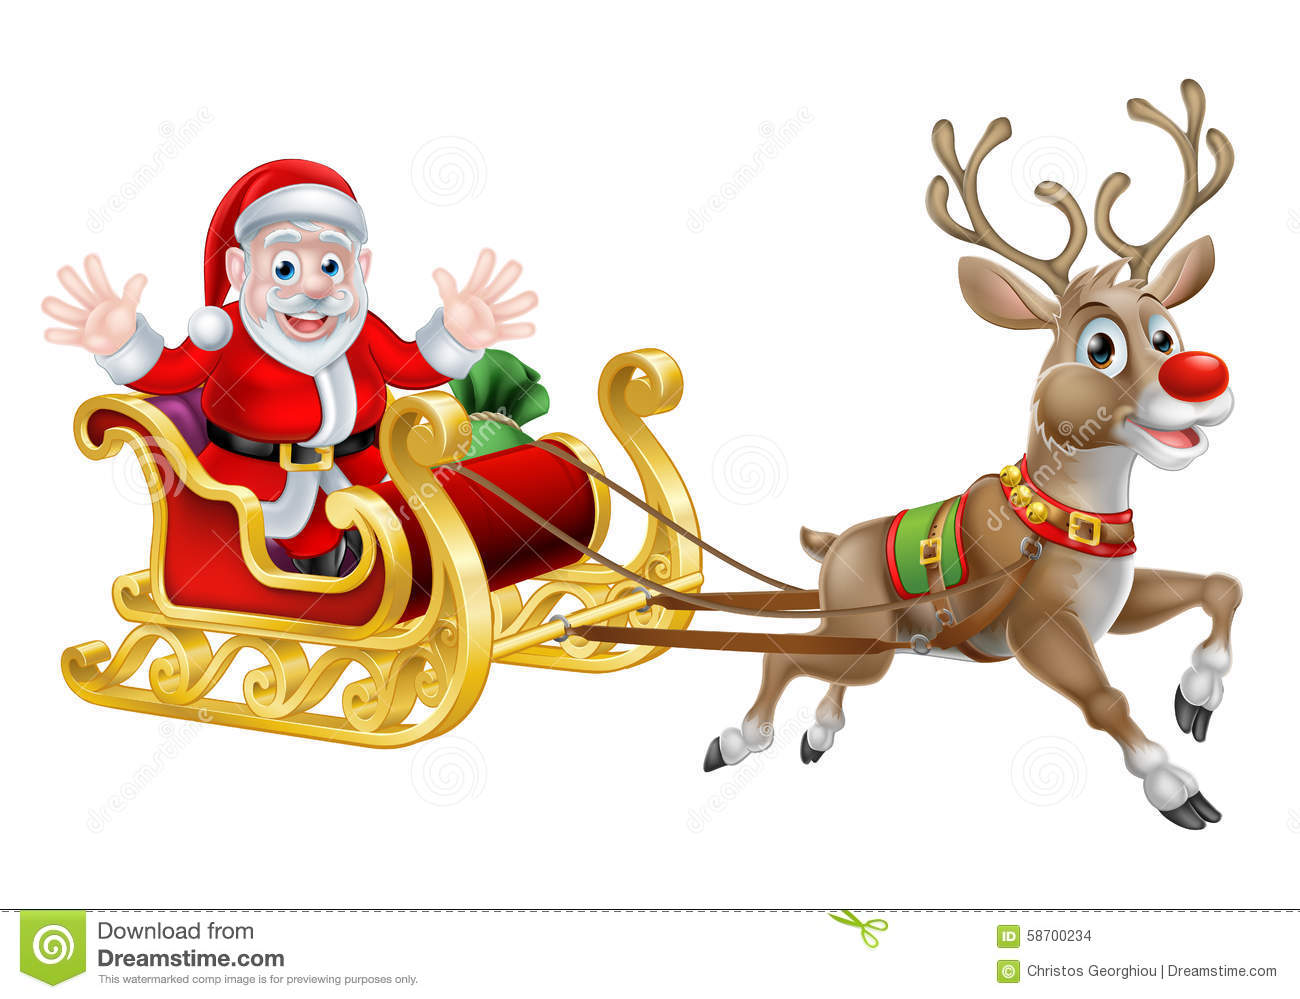 Cartoon of Santa and his reindeer with his Christmas sled.